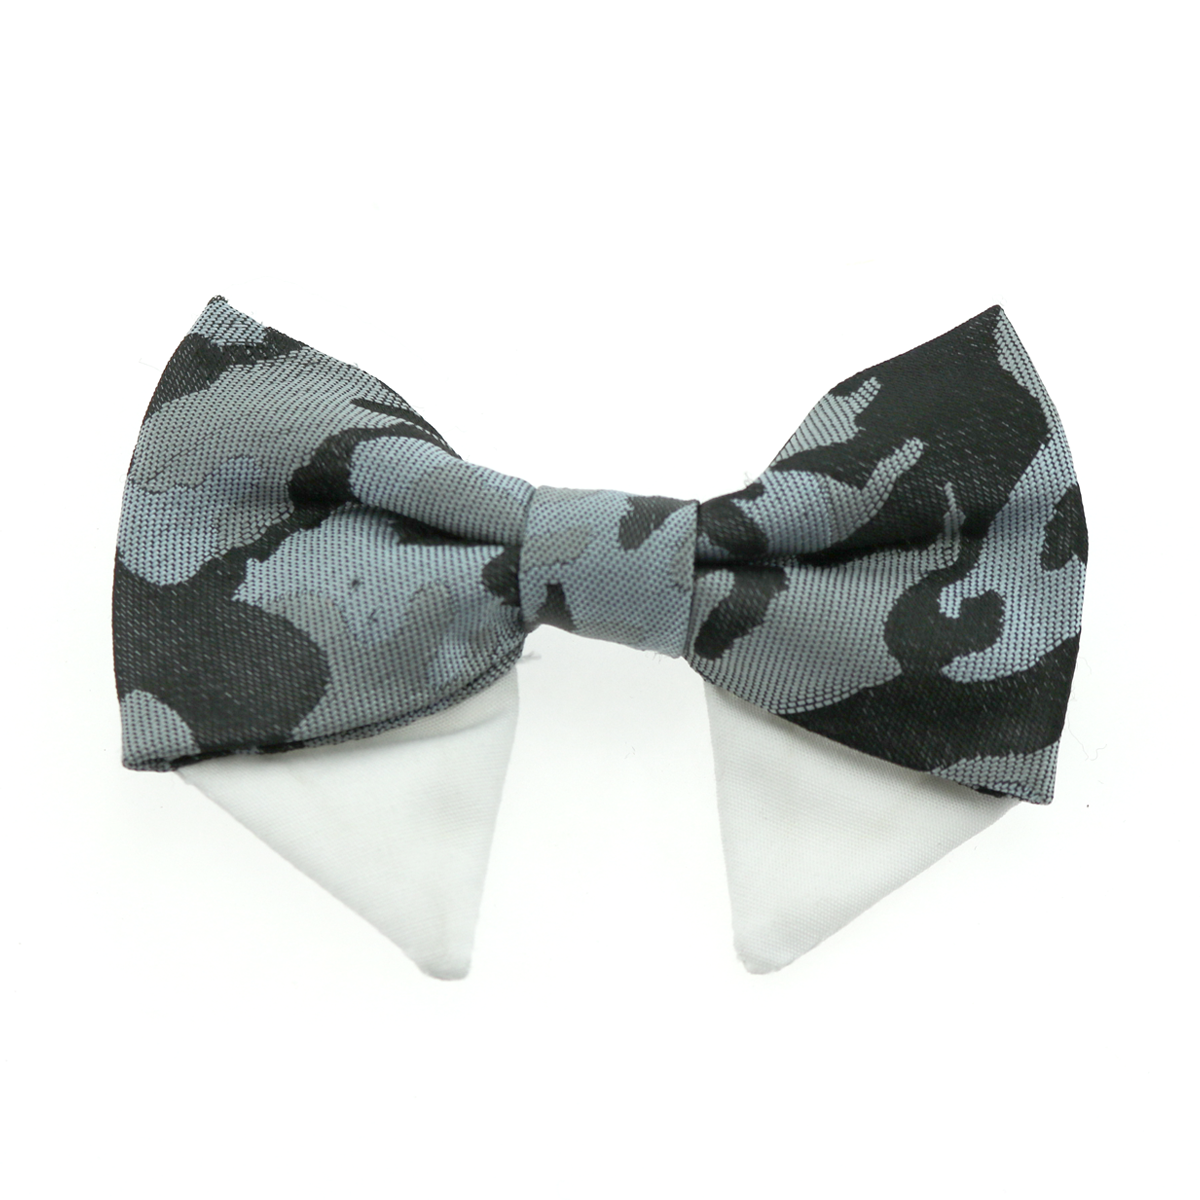 Dog Bow Tie Collar Attachment by Doggie Design - Gray Camo